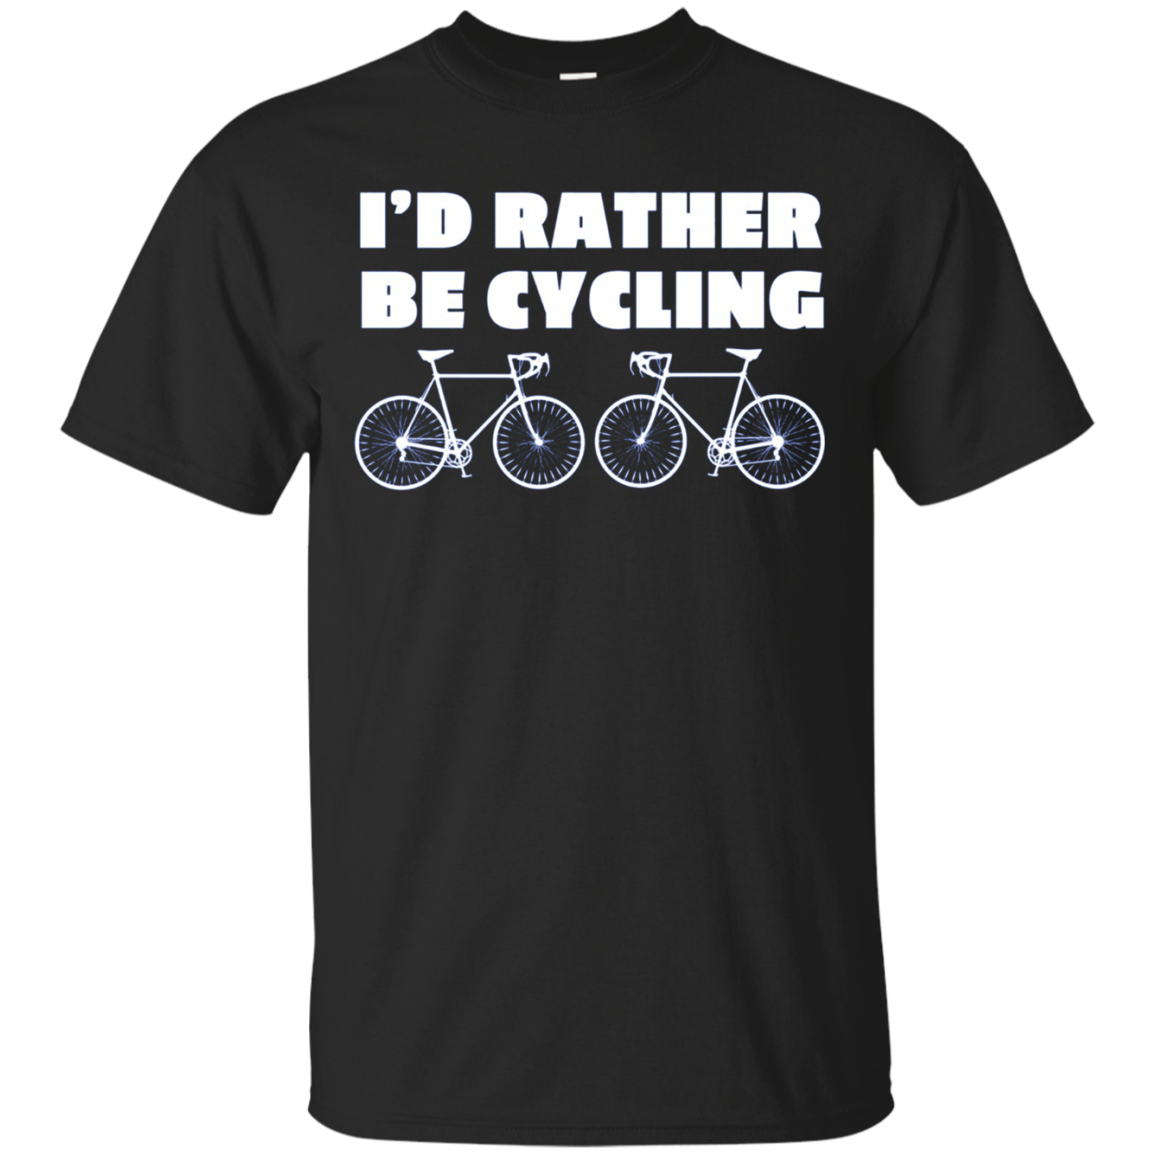 I'D RATHER BE CYCLING Funny Bicycle Workout Shirt